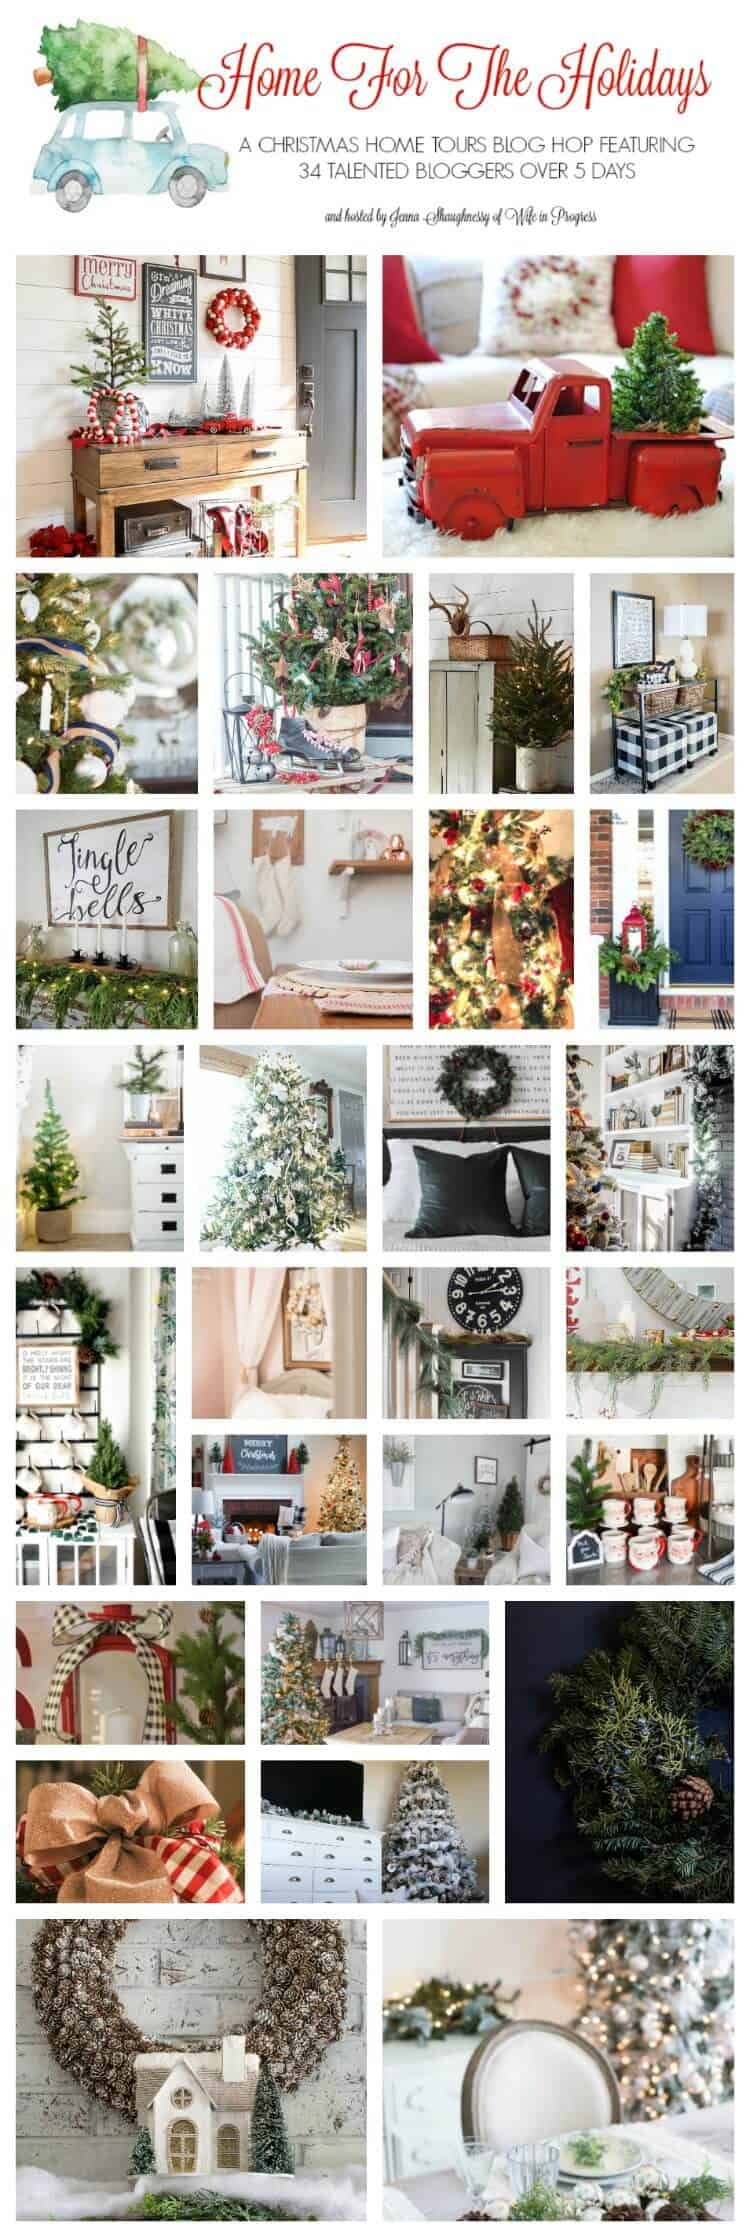 Home for the Holidays Christmas Blog Hop